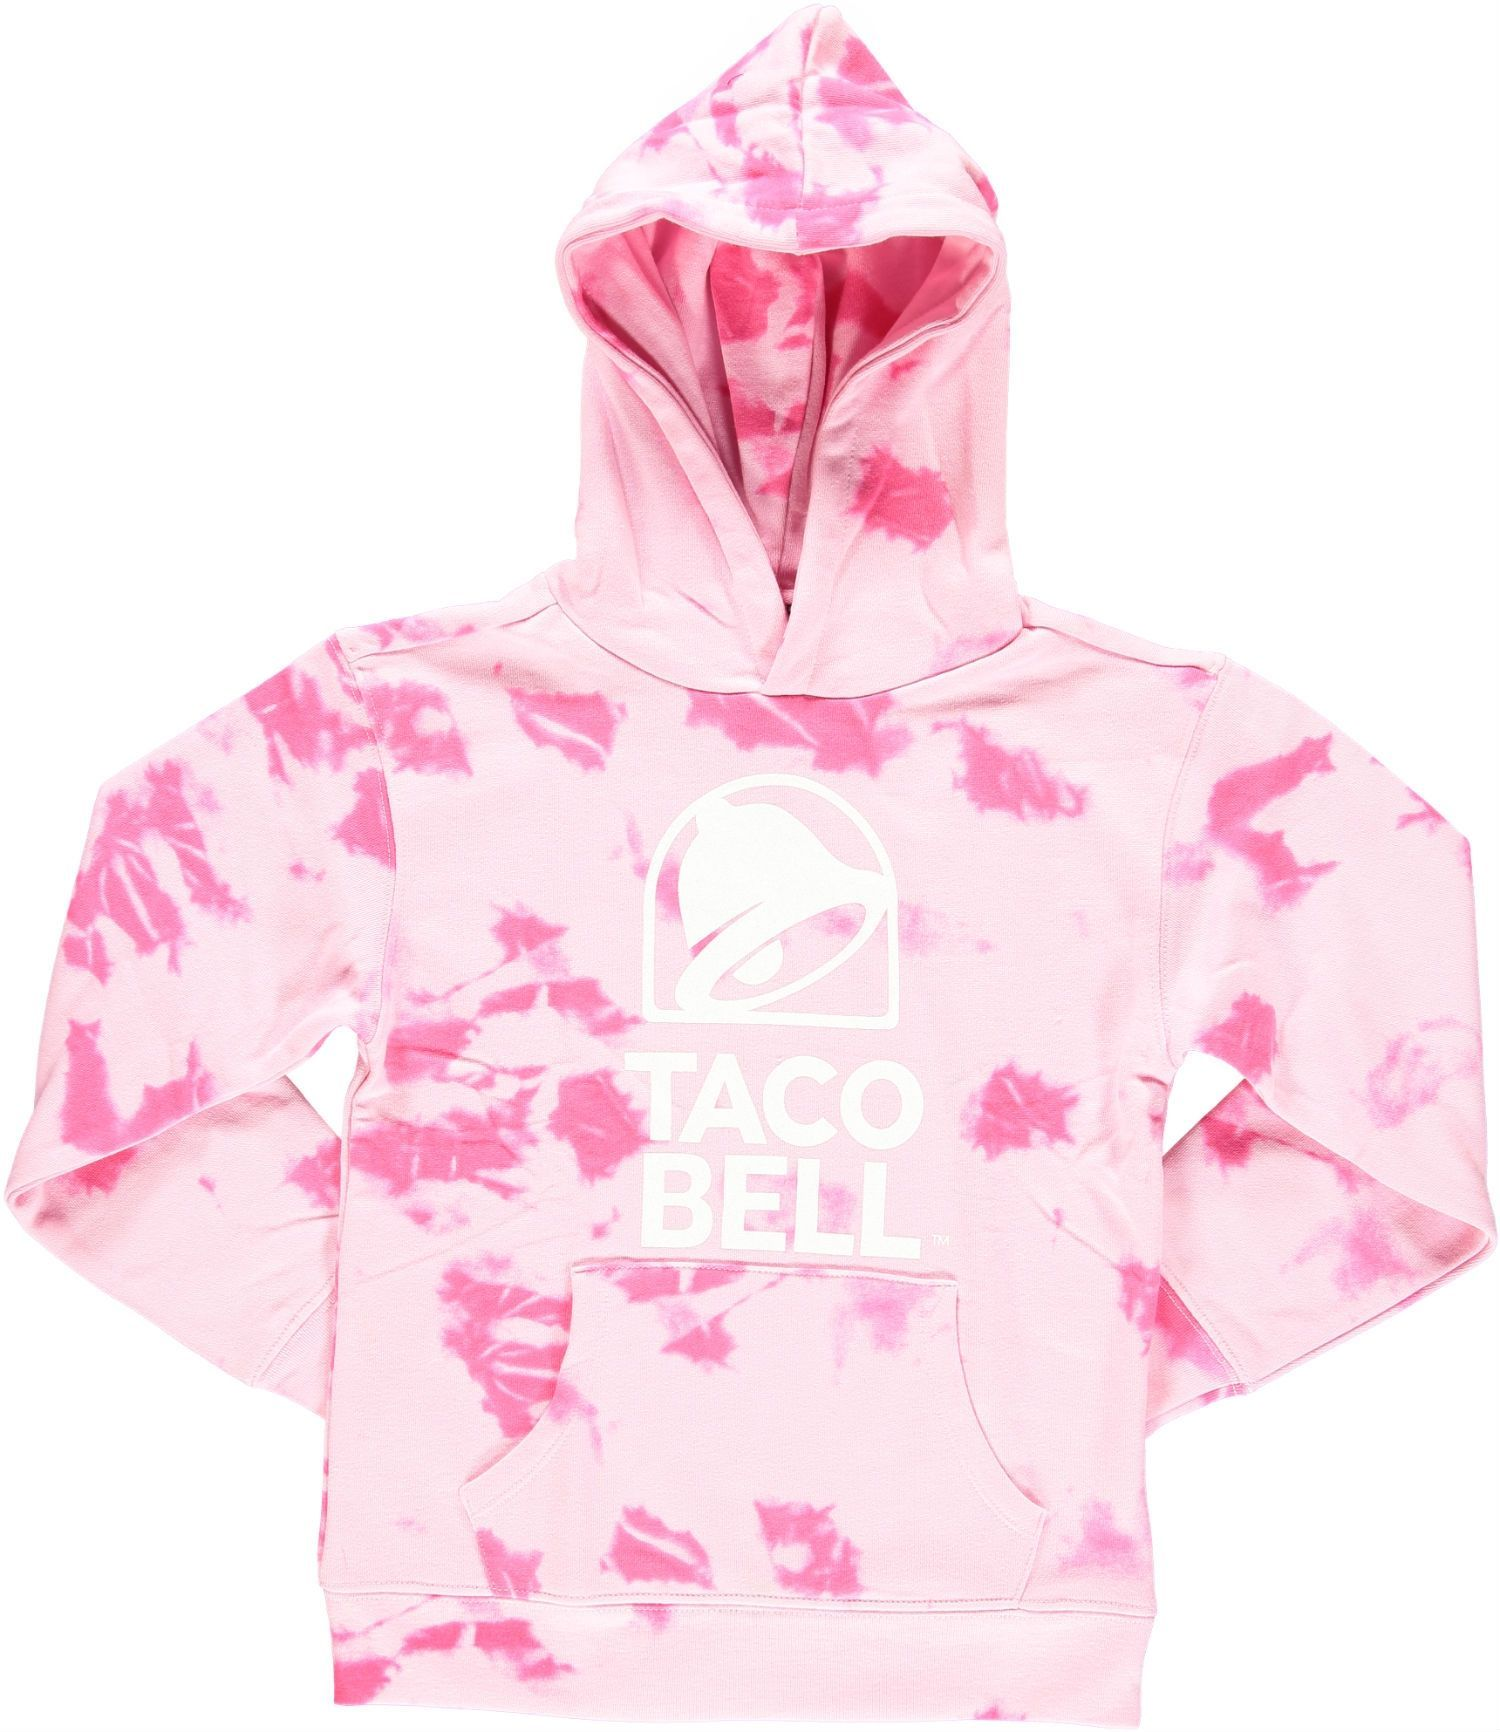 Taco Bell and Forever 21's Full Collaboration Is Out and